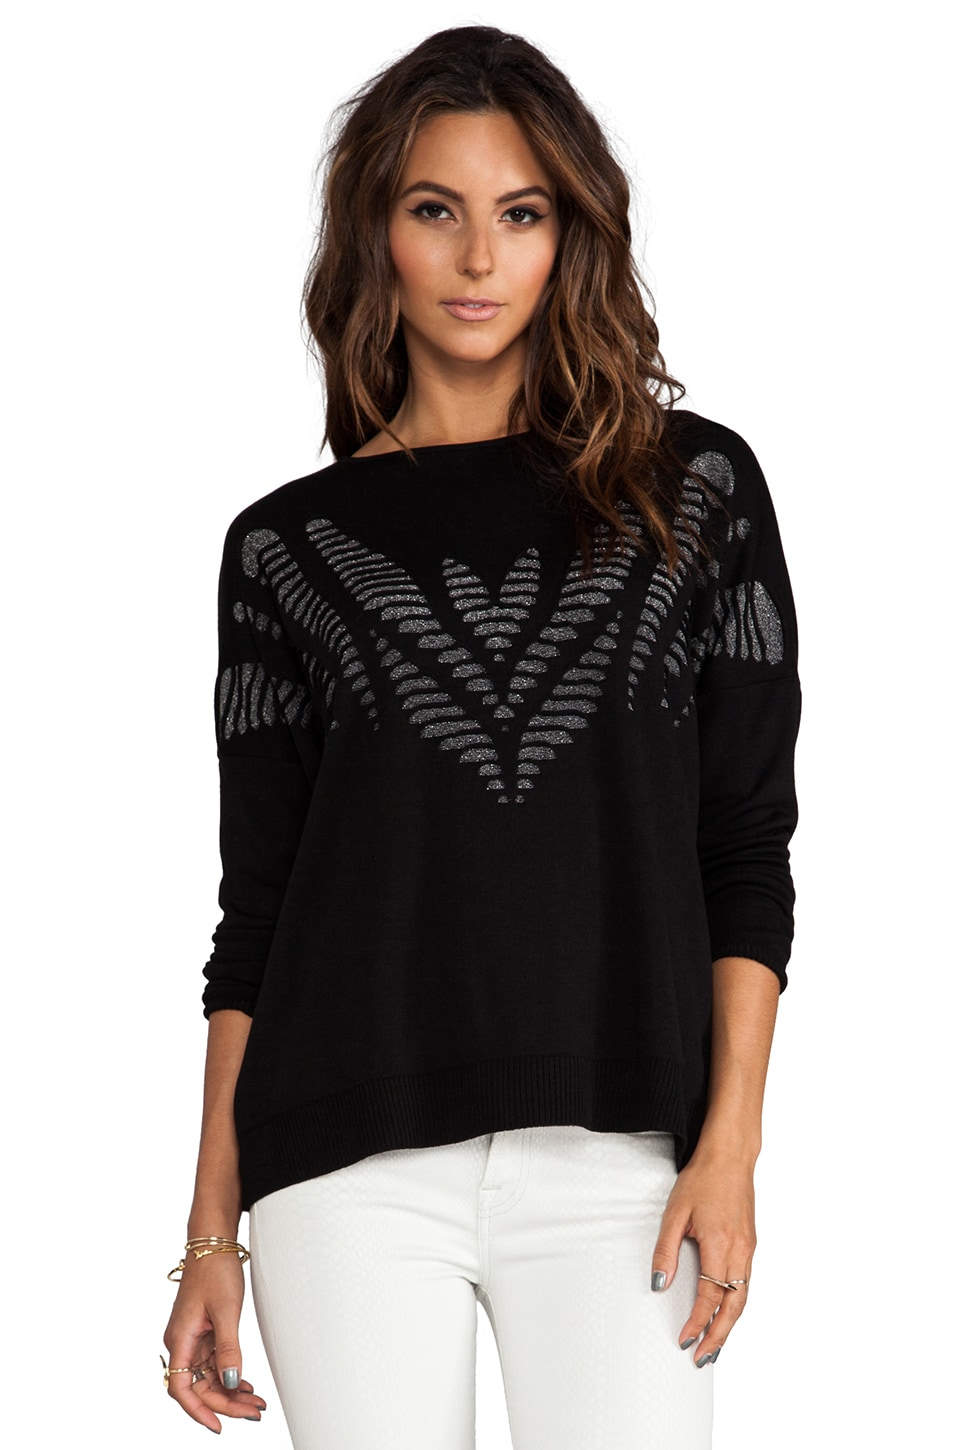 RVN Cutout Illusion Sporty Top in Platinum/Black